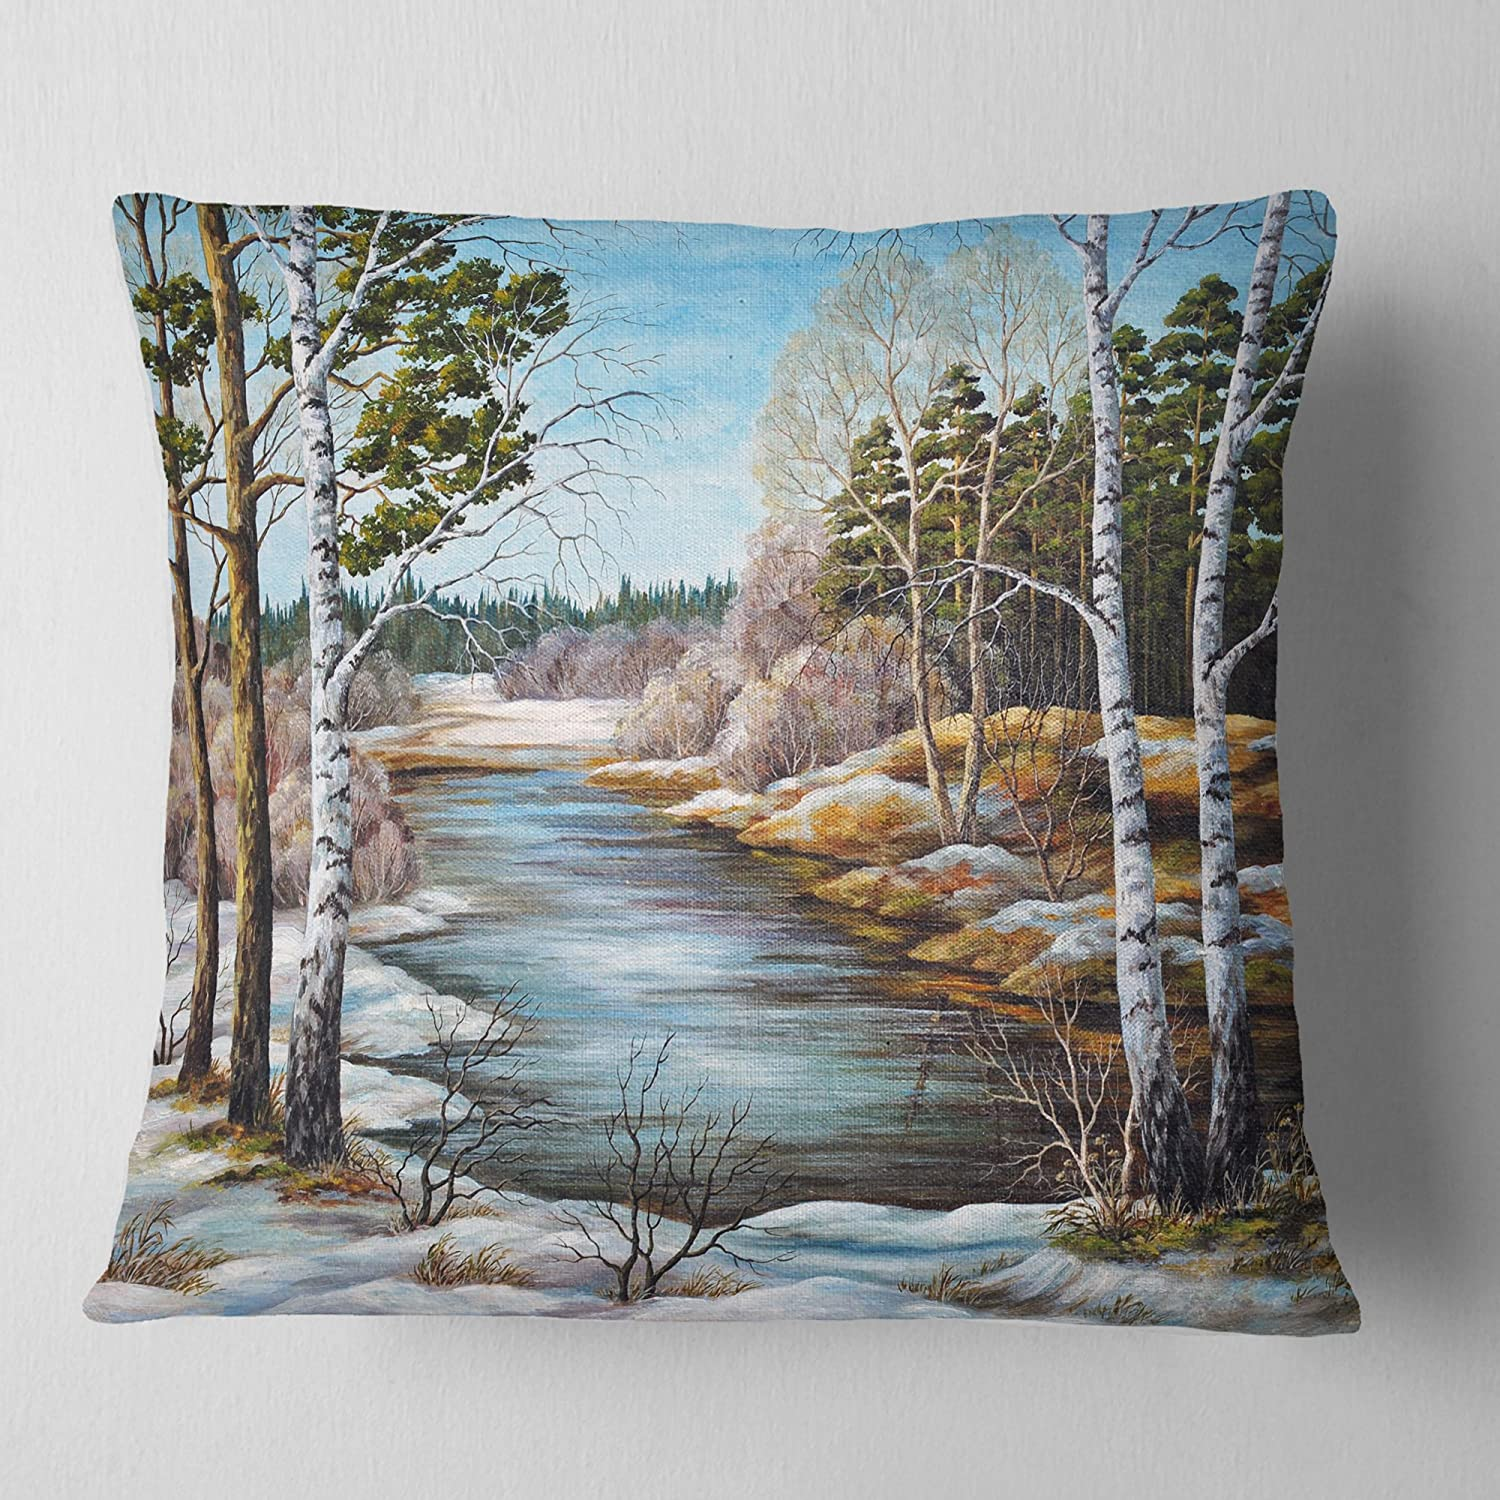 Sofa Throw Pillow 18 in in Designart CU6169-18-18 The Spring Siberian River Landscape Printed Cushion Cover for Living Room Insert Side x 18 in